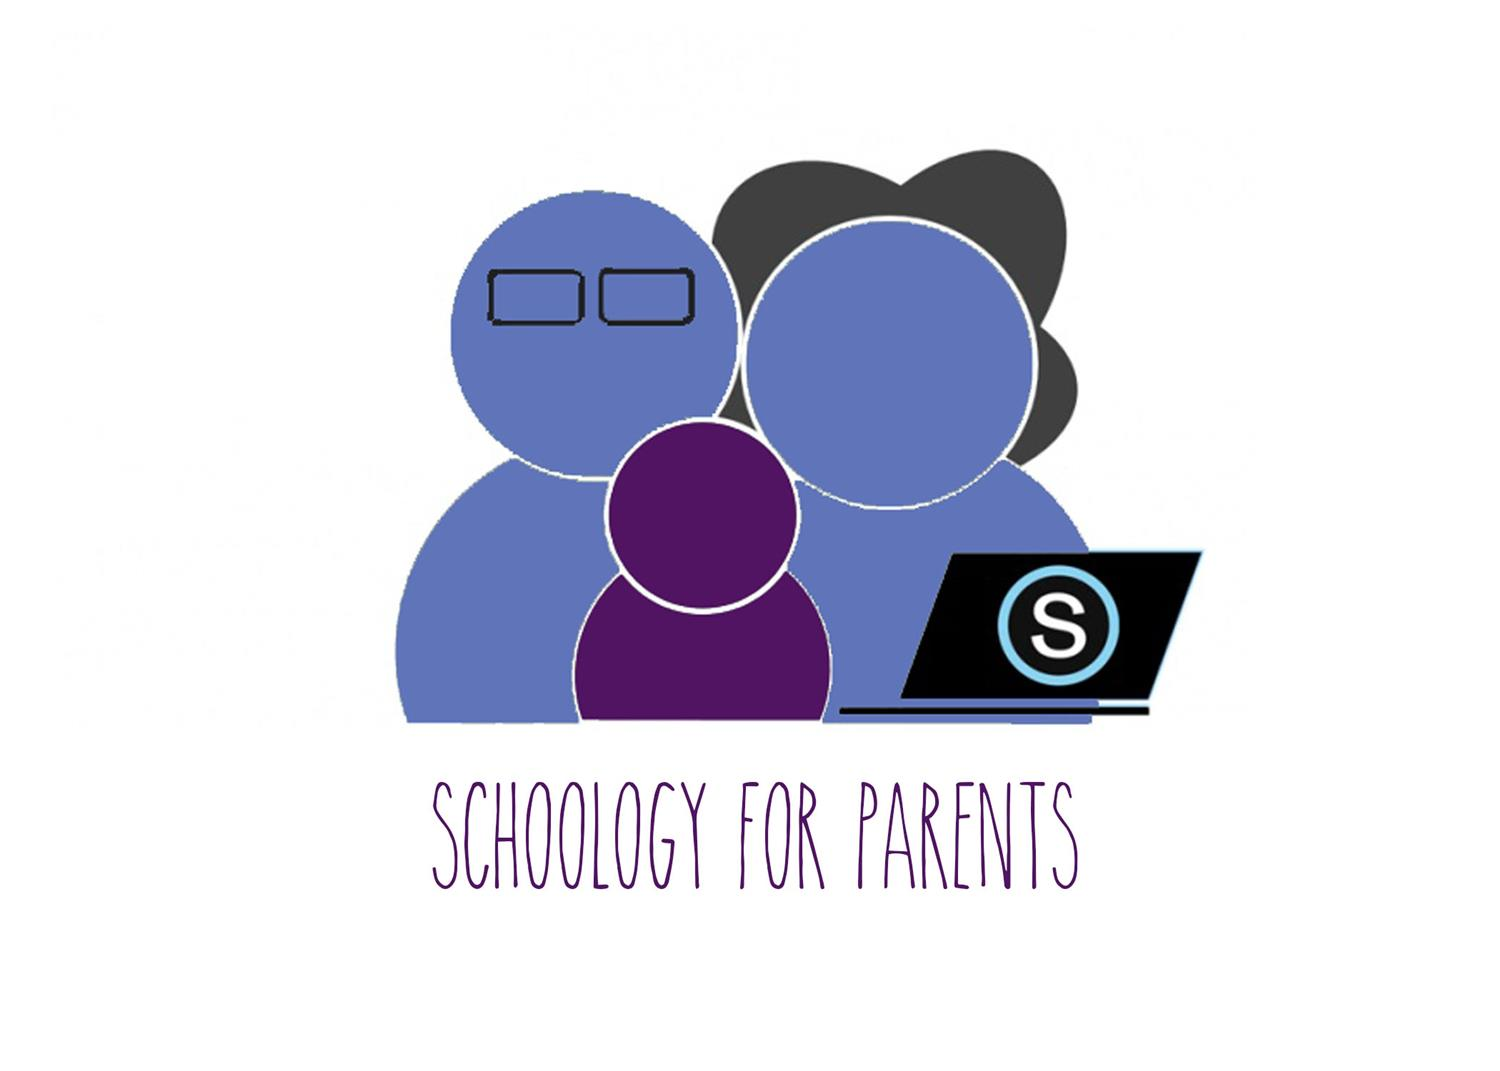 Schoology for Parents